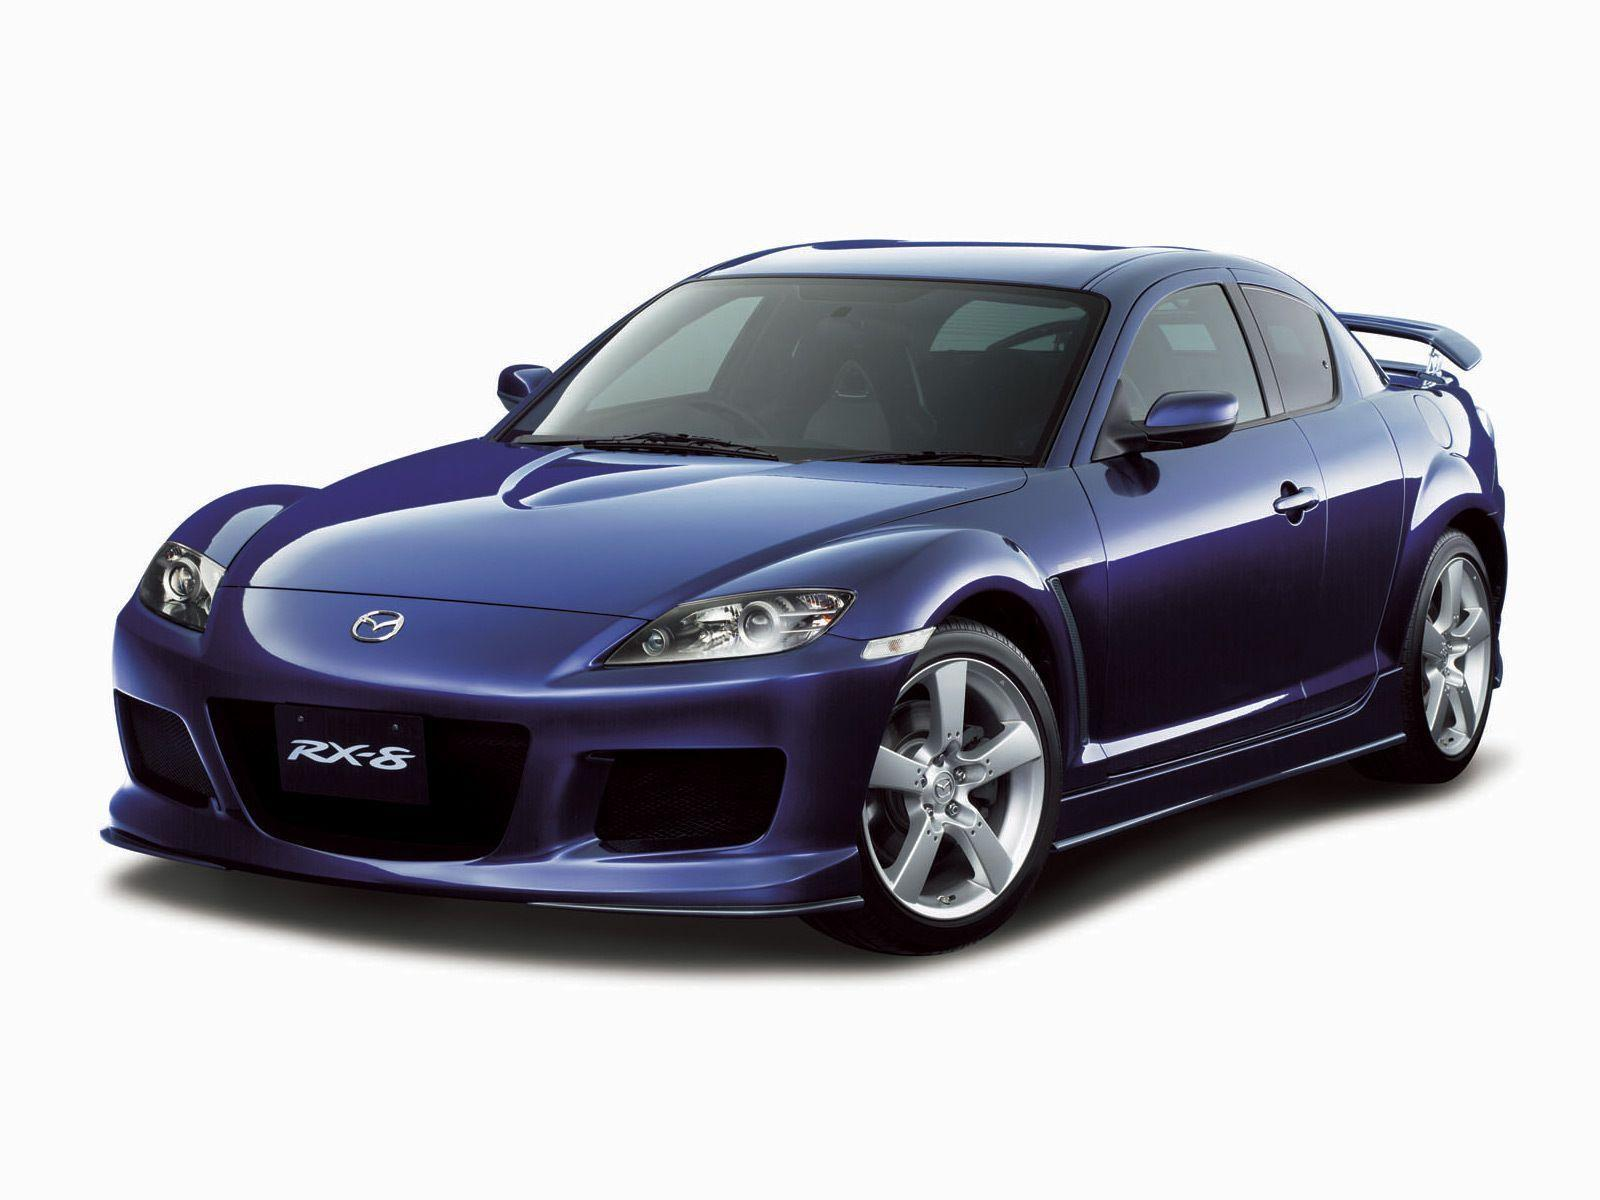 mazda rx 8 wallpapers wallpaper cave. Black Bedroom Furniture Sets. Home Design Ideas